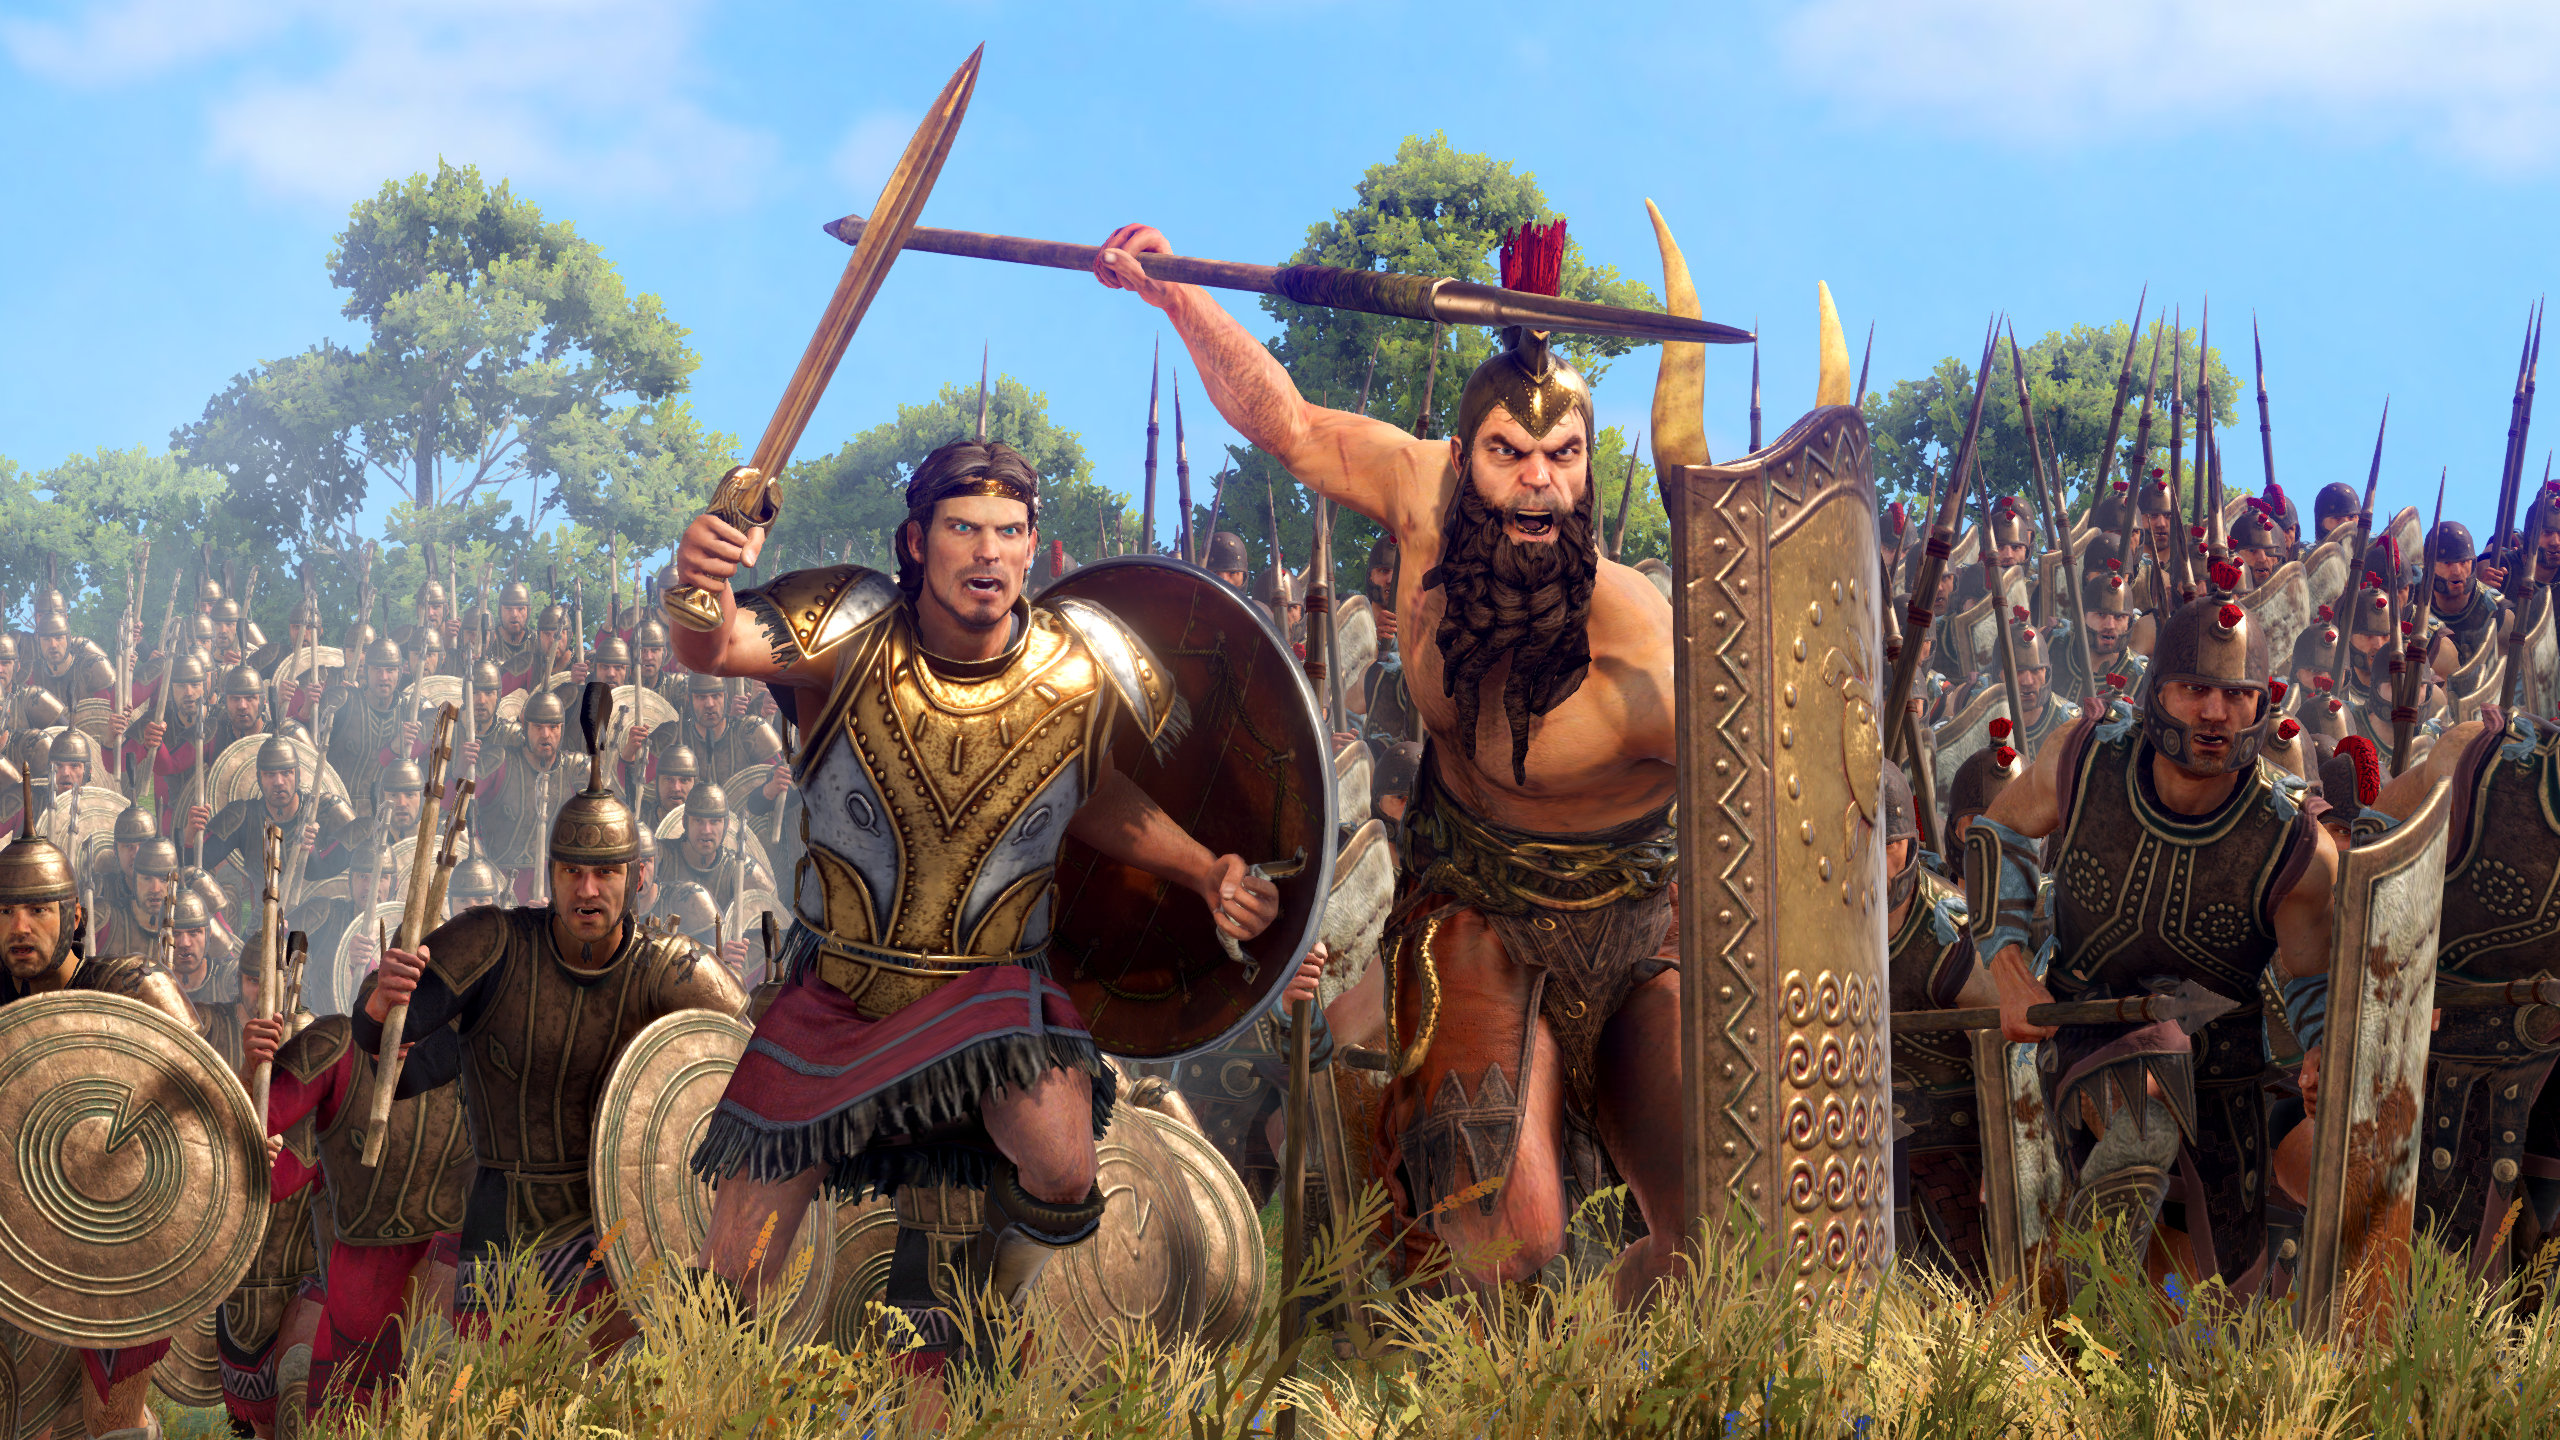 Best bros Ajax and Diomedes are coming to A Total War Saga: Troy